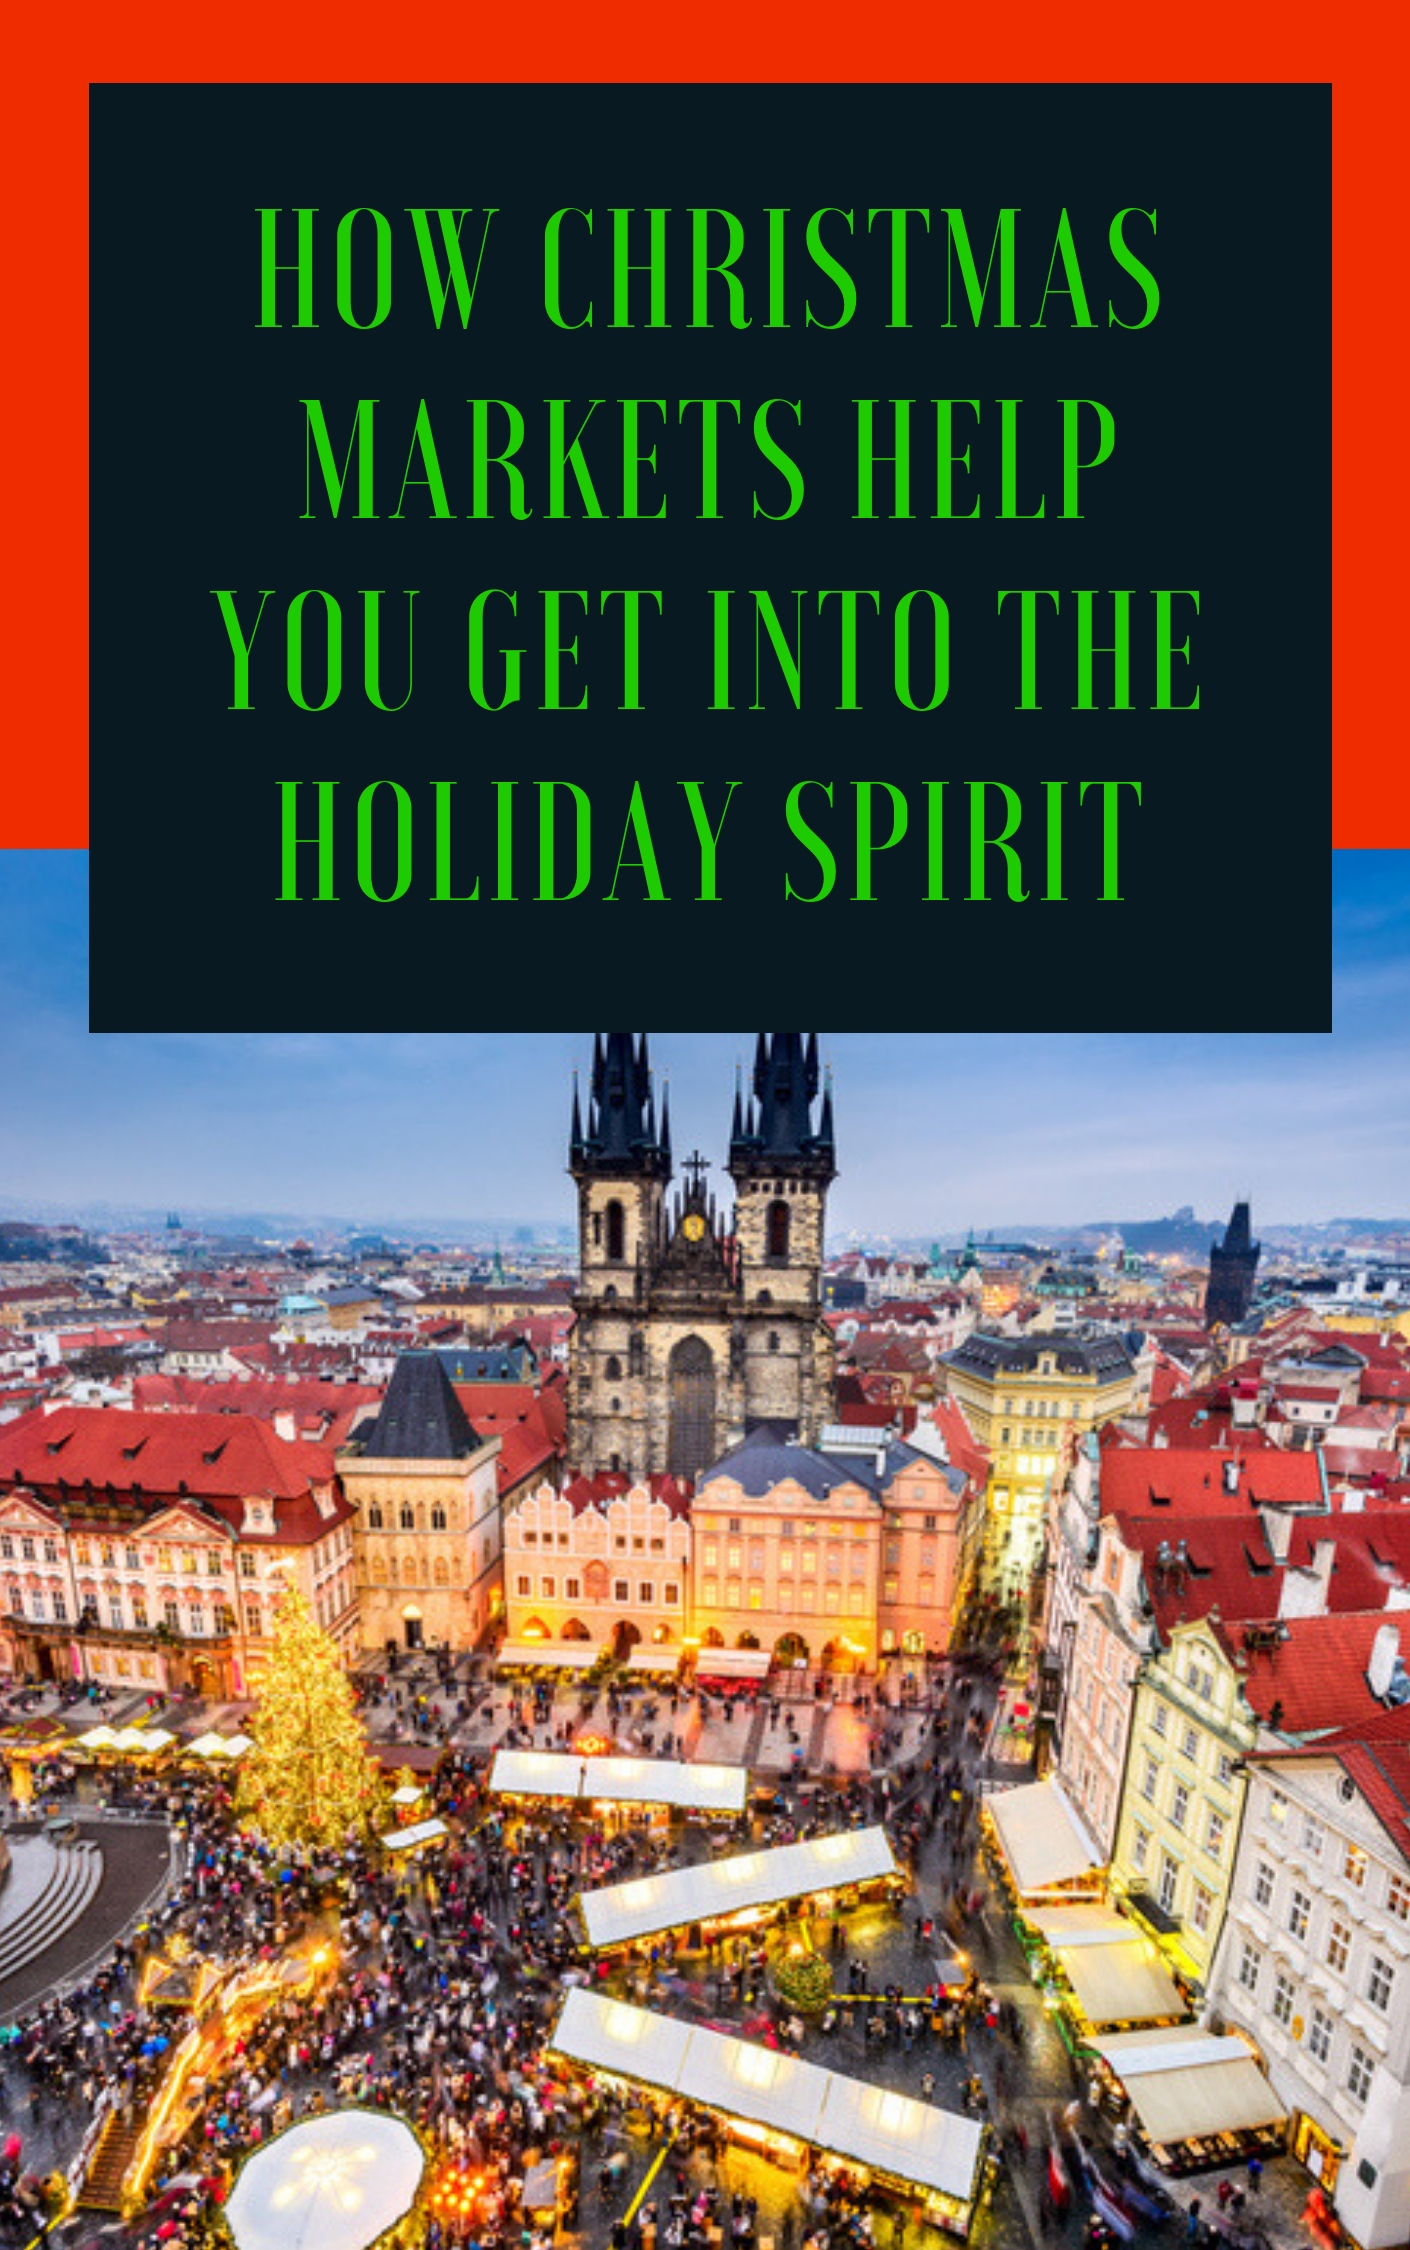 How Christmas Markets Help You Get Into the Holiday Spirit